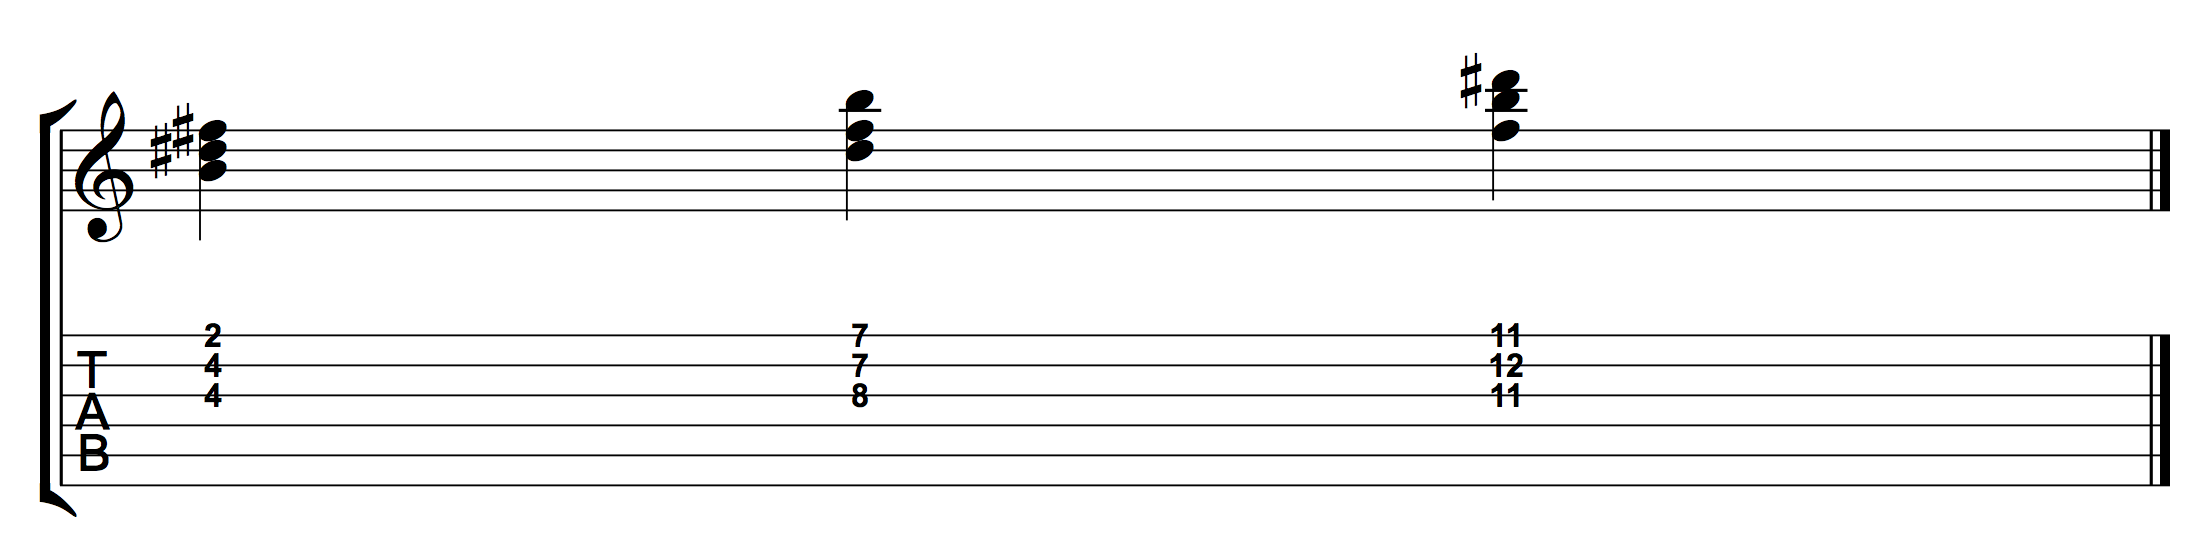 B Major Triad 3 Inversions